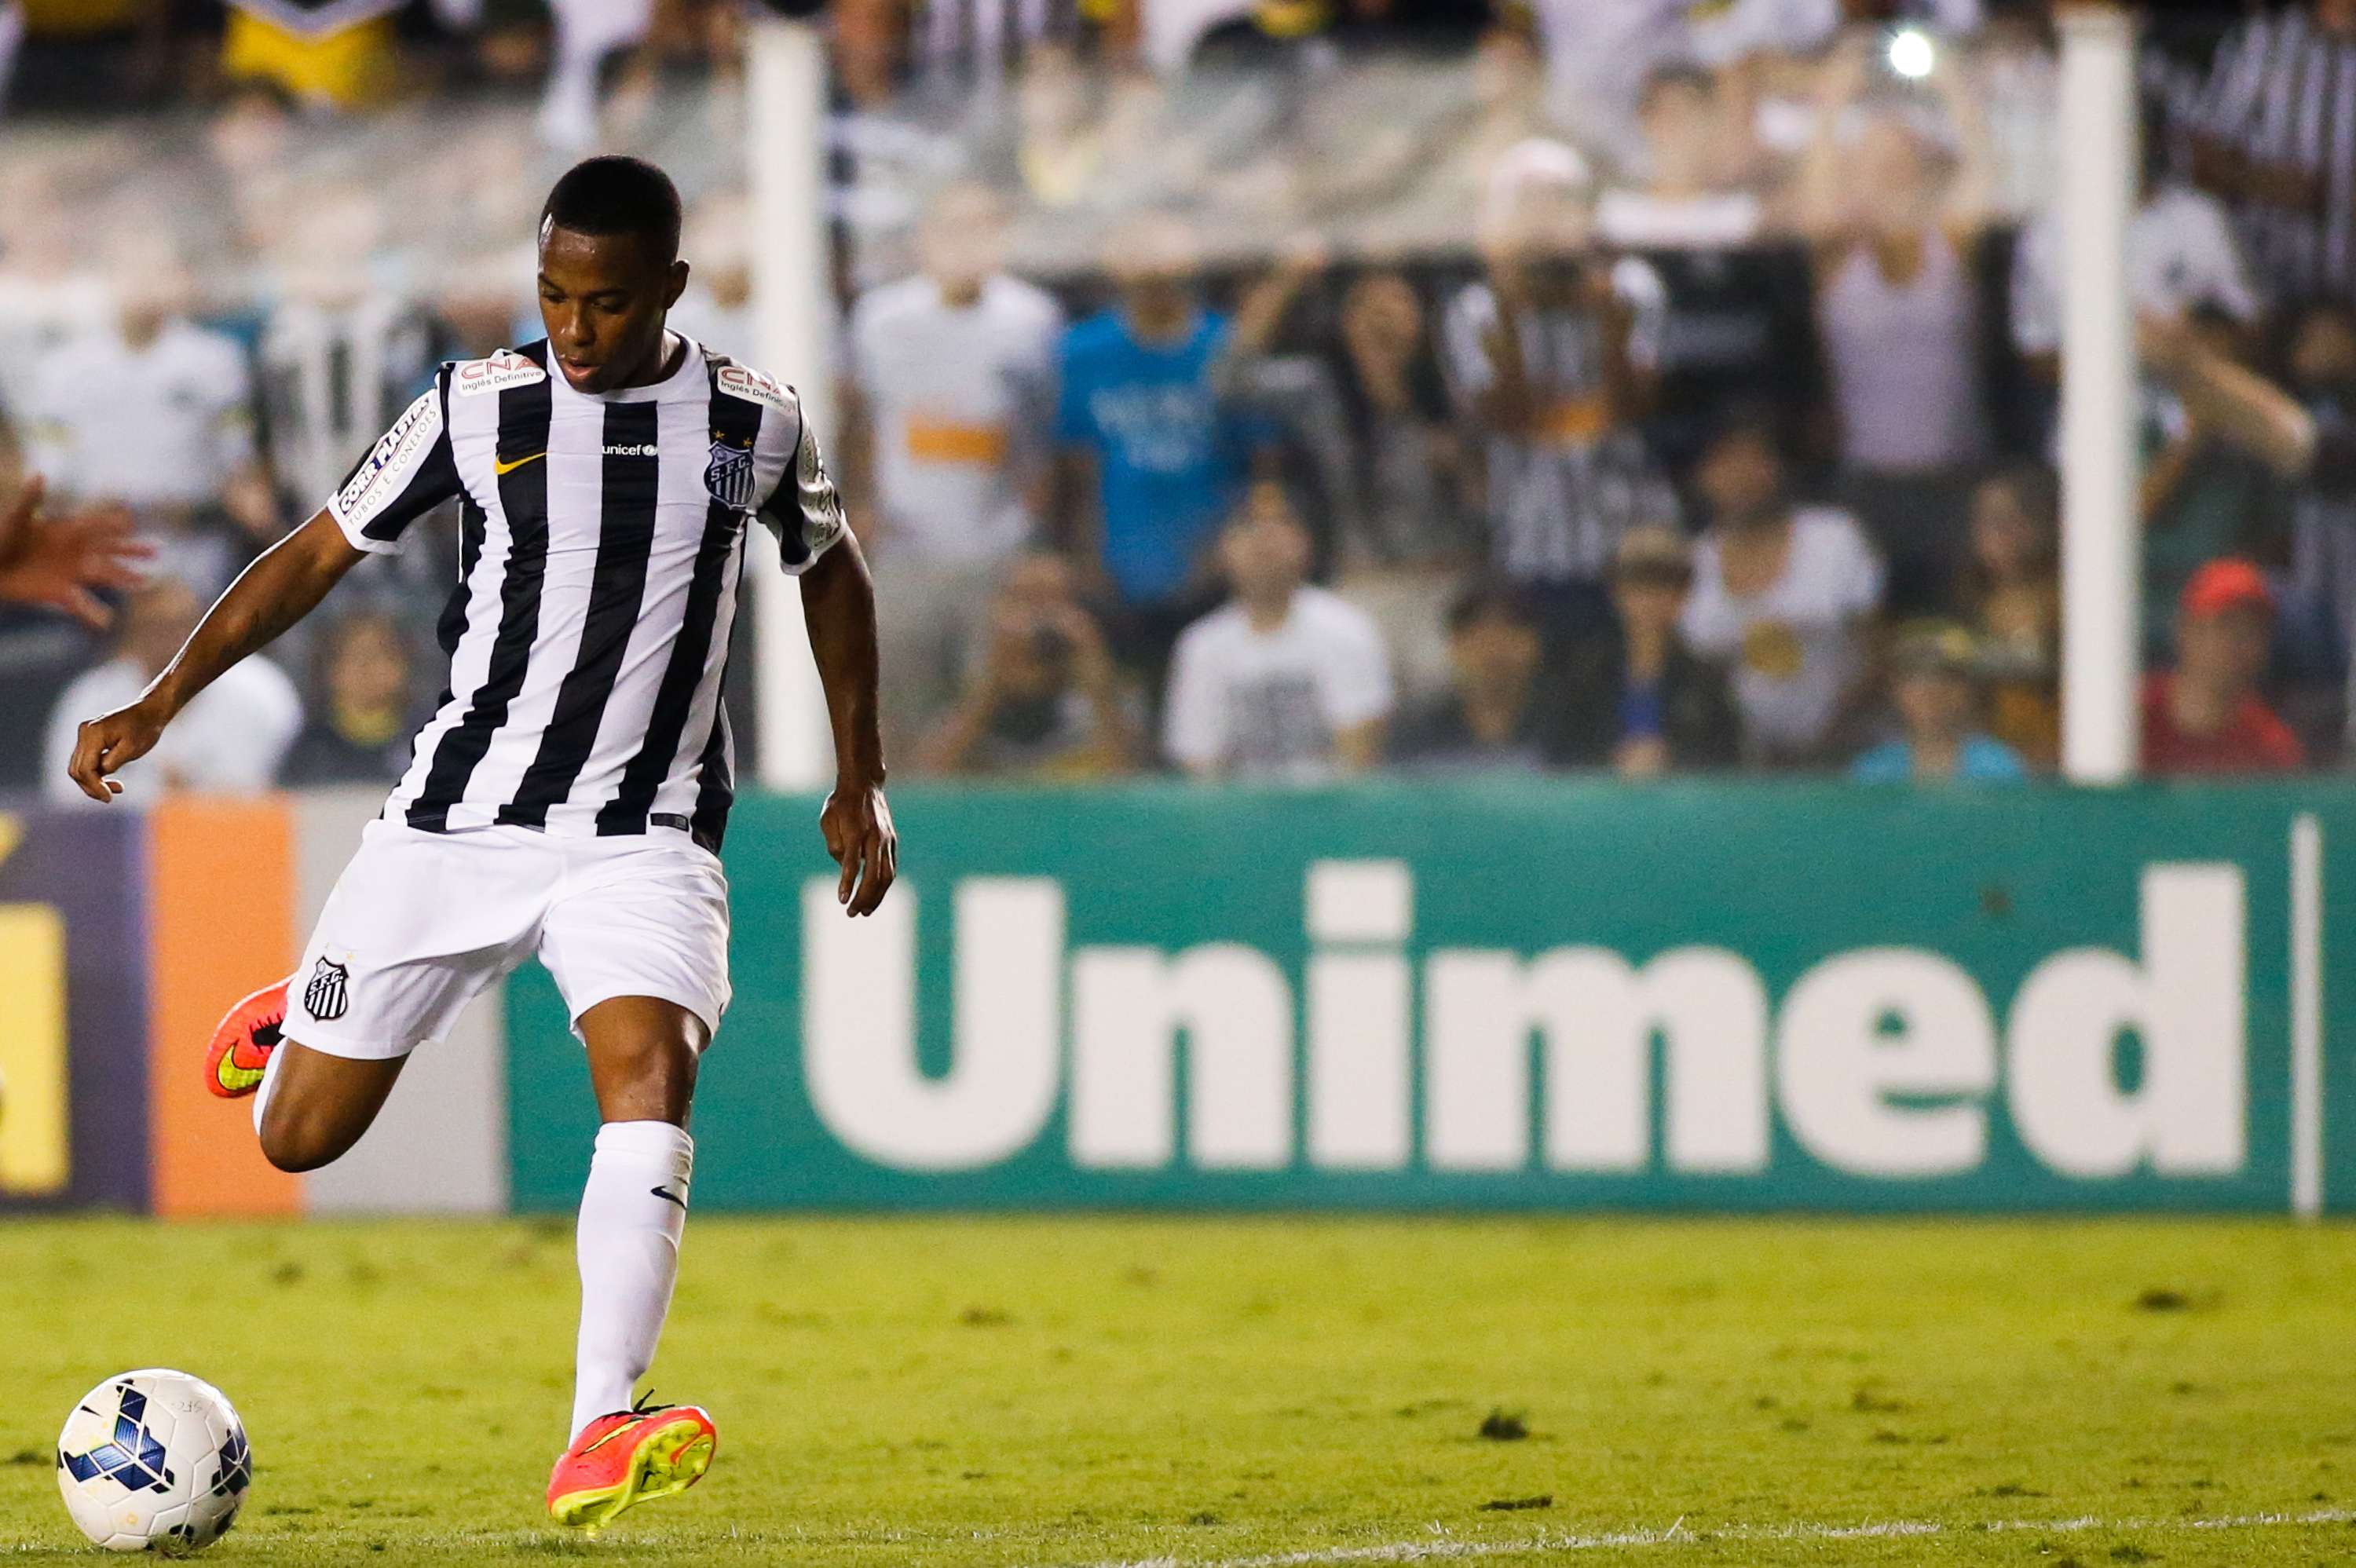 Robinho deu um toque por cobertura para ampliar a vantagem do Santos contra o Coritiba Foto: Alexandre Schneider/Getty Images